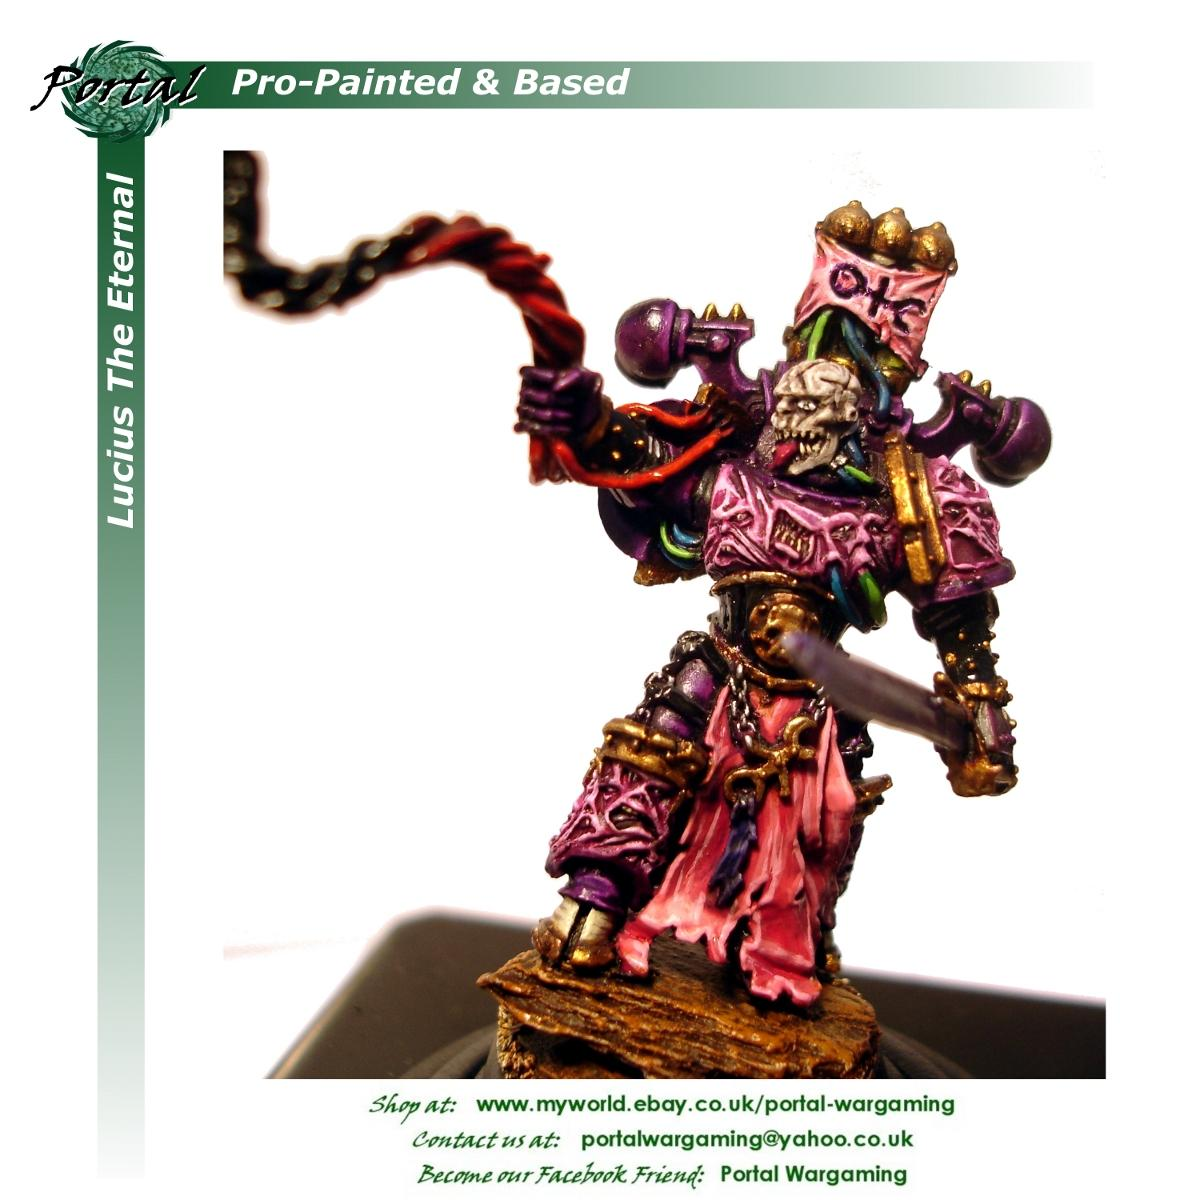 Chaos Space Marines, Emperor's Children, Pro-based, Pro-painted, Warhammer 40,000